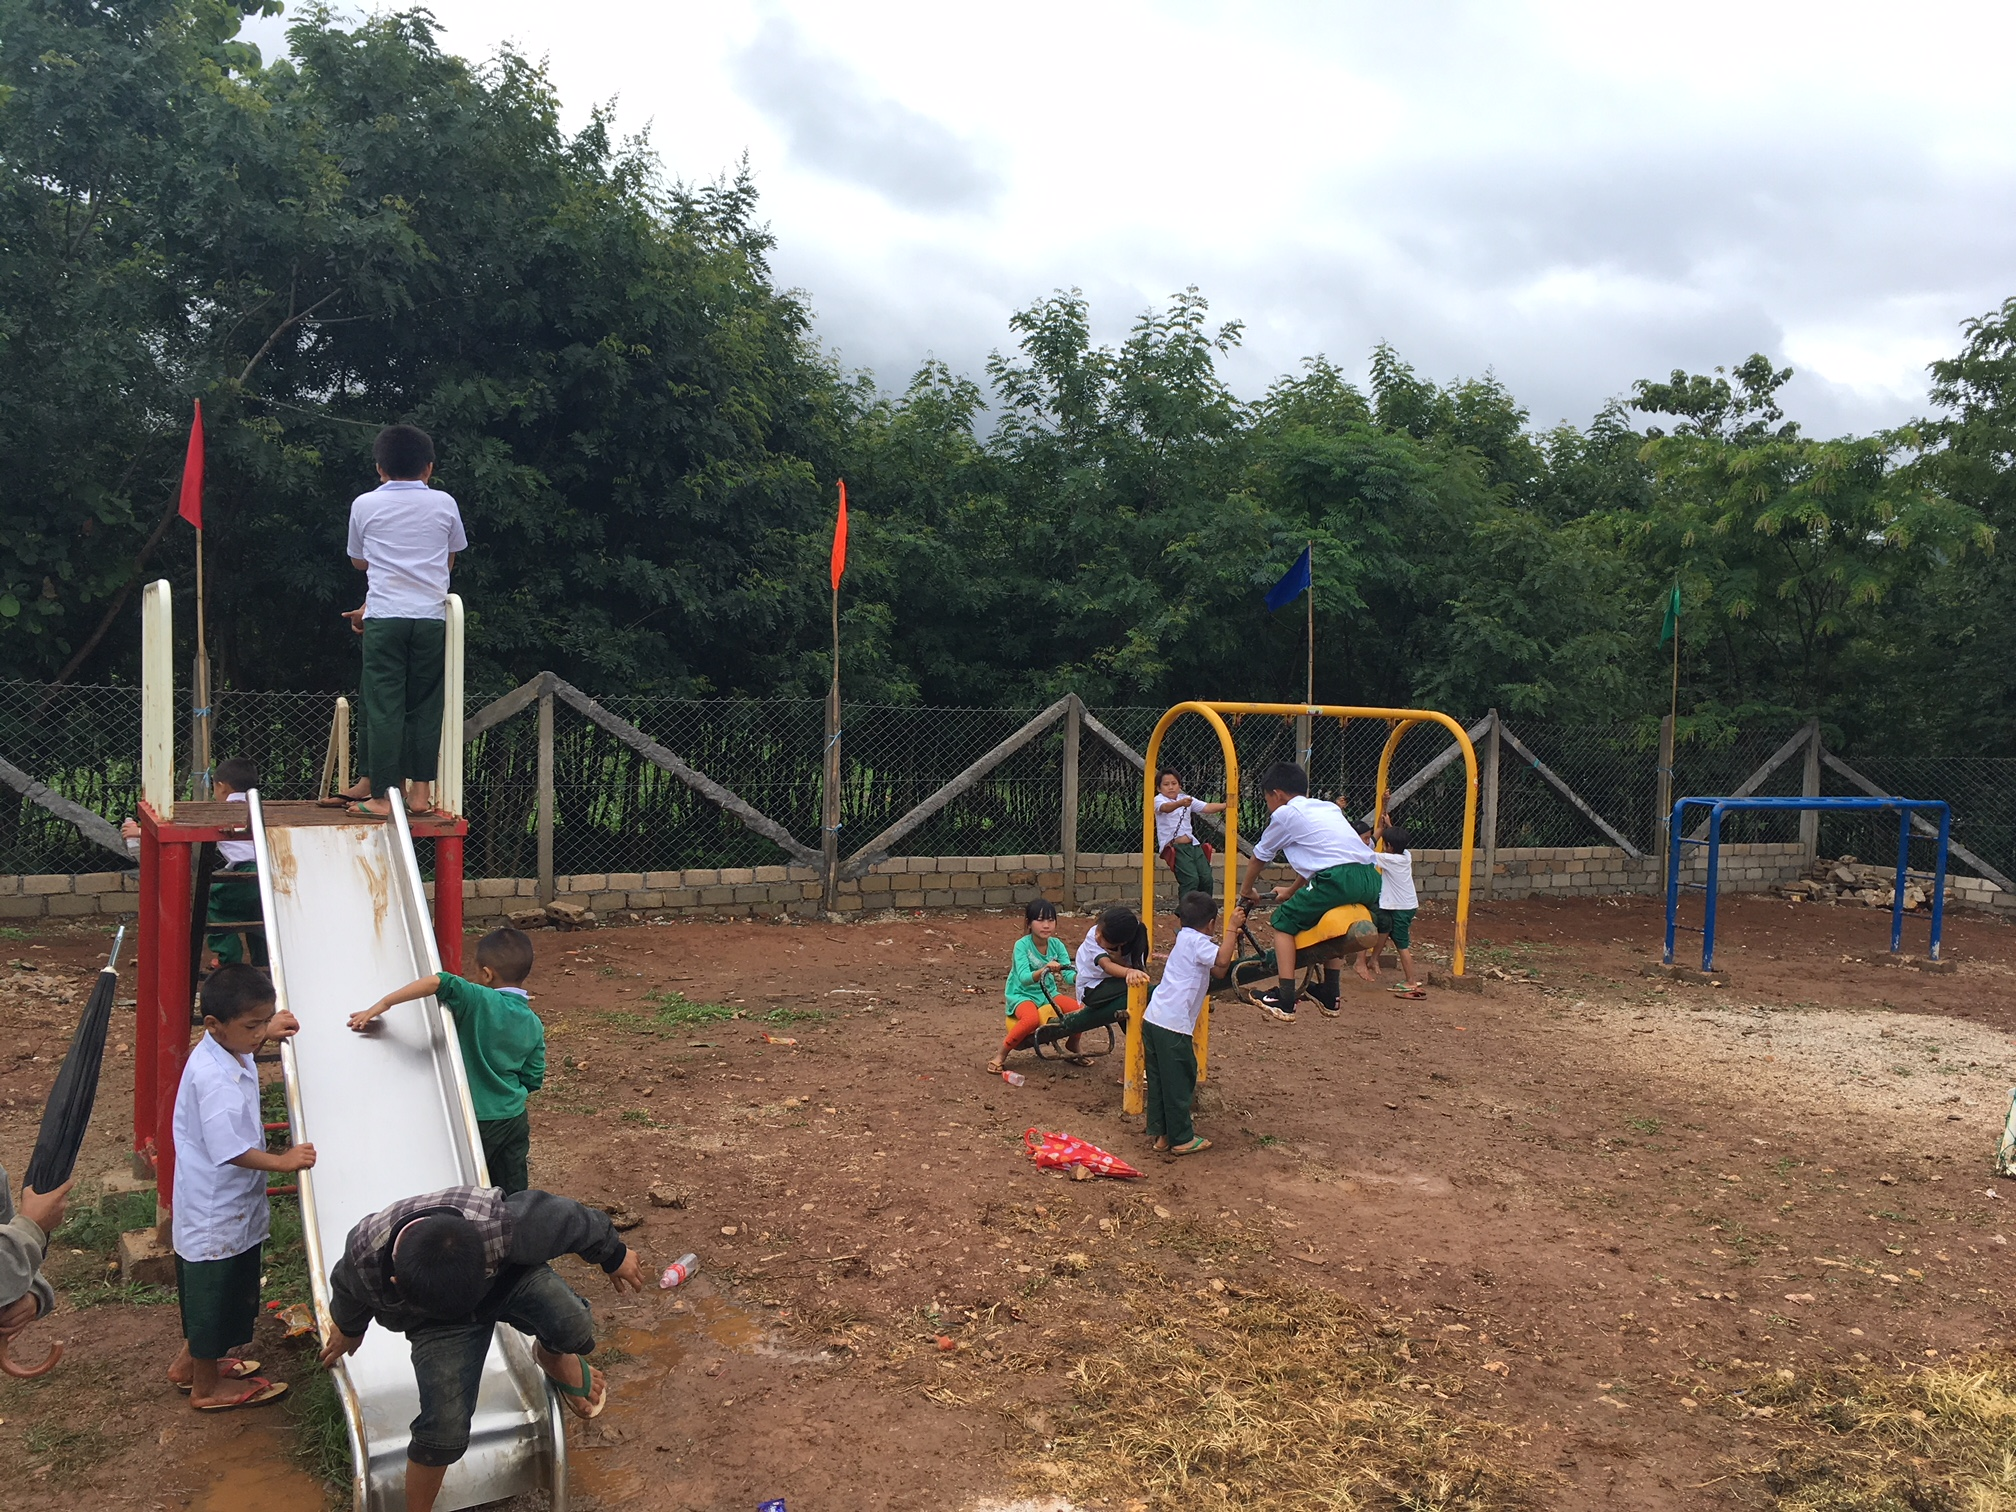 Pupils on the playground